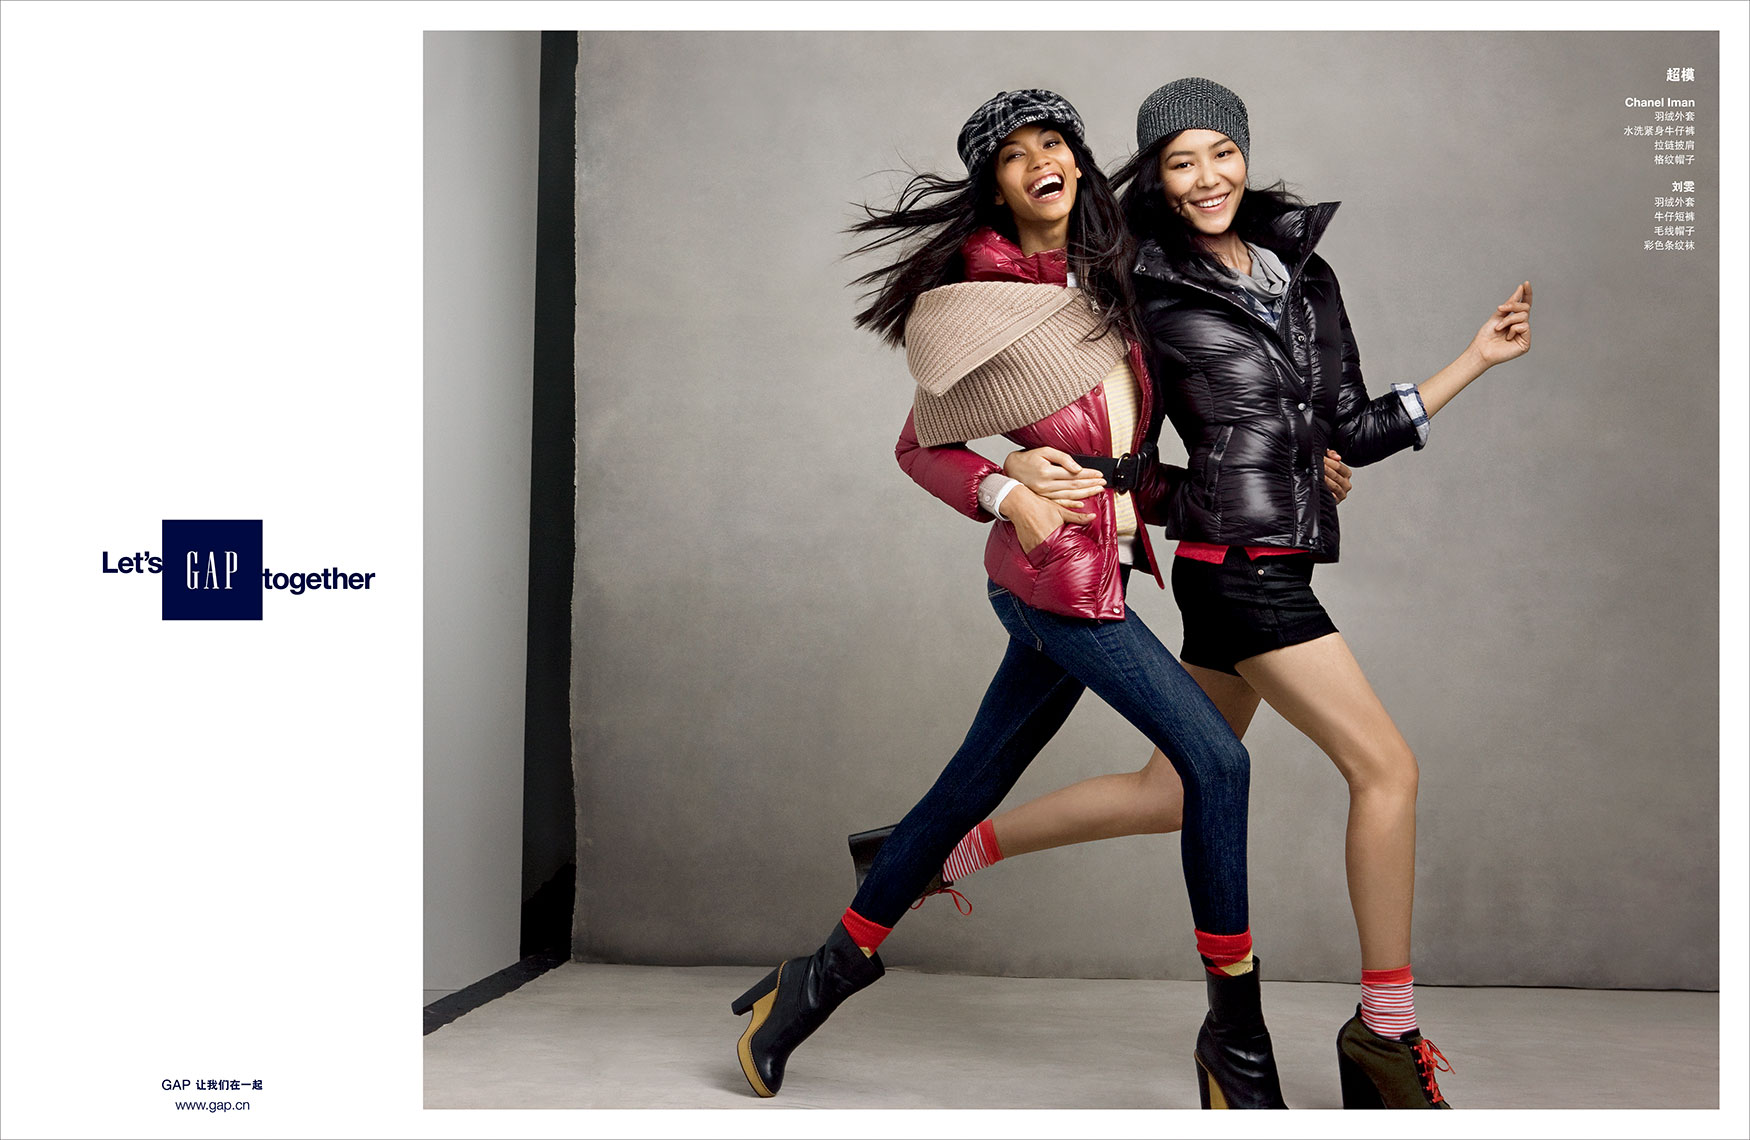 0000183-Chanel-Iman-Gap-China